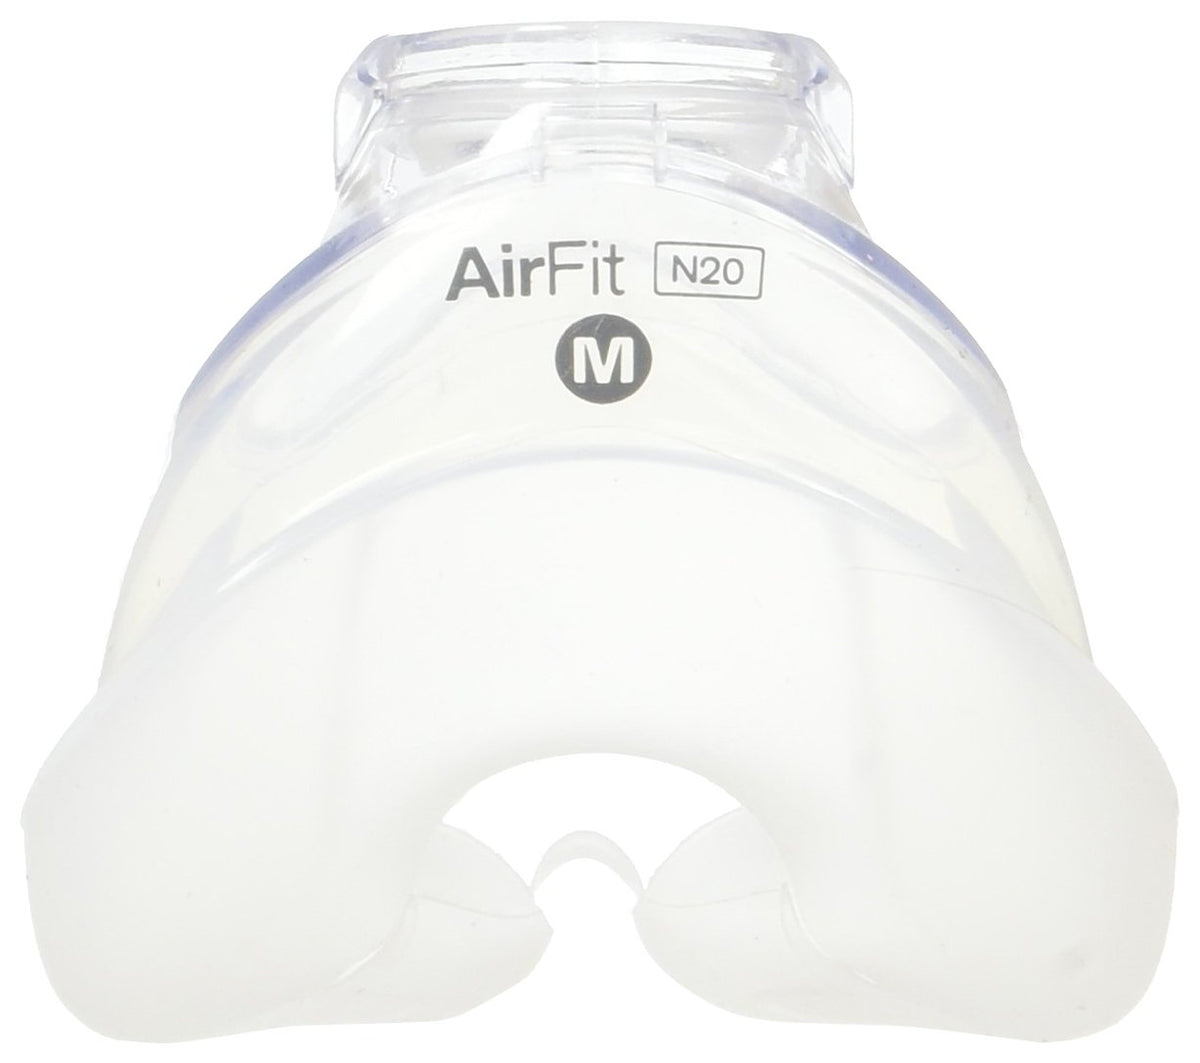 Top view of transparent silicone cushion for ResMed AirFit N20.